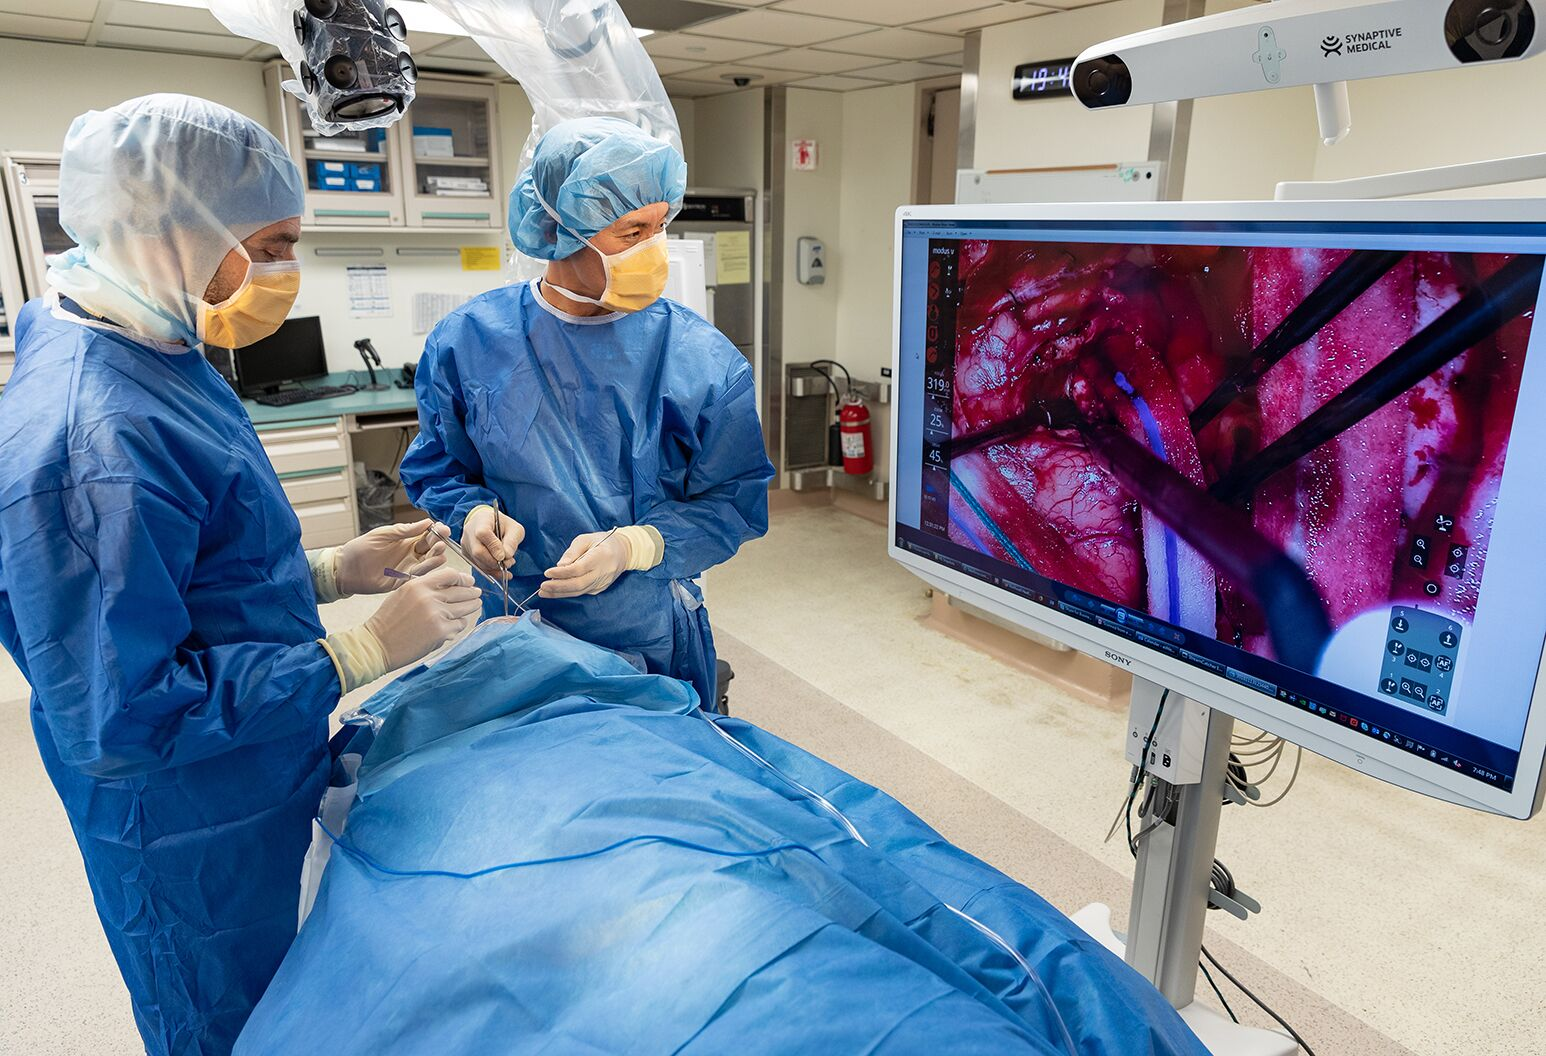 Two surgeons in an operating theatre look at a screen displaying a live feed of the brain surgery they are performing.